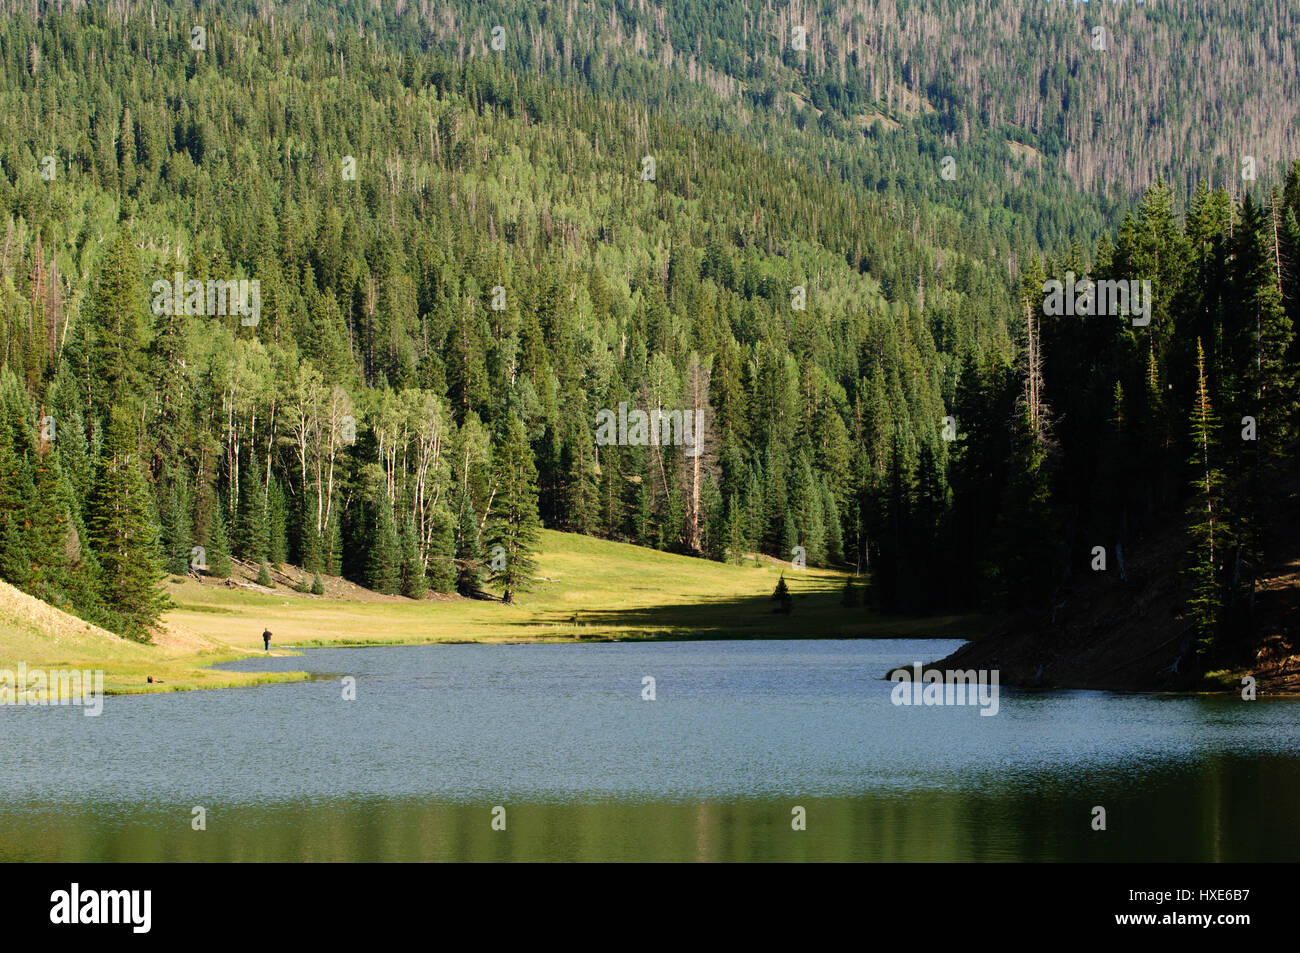 A lone fisherman enjoys the little reservoir at Anderson Meadow in Utah. - Stock Image